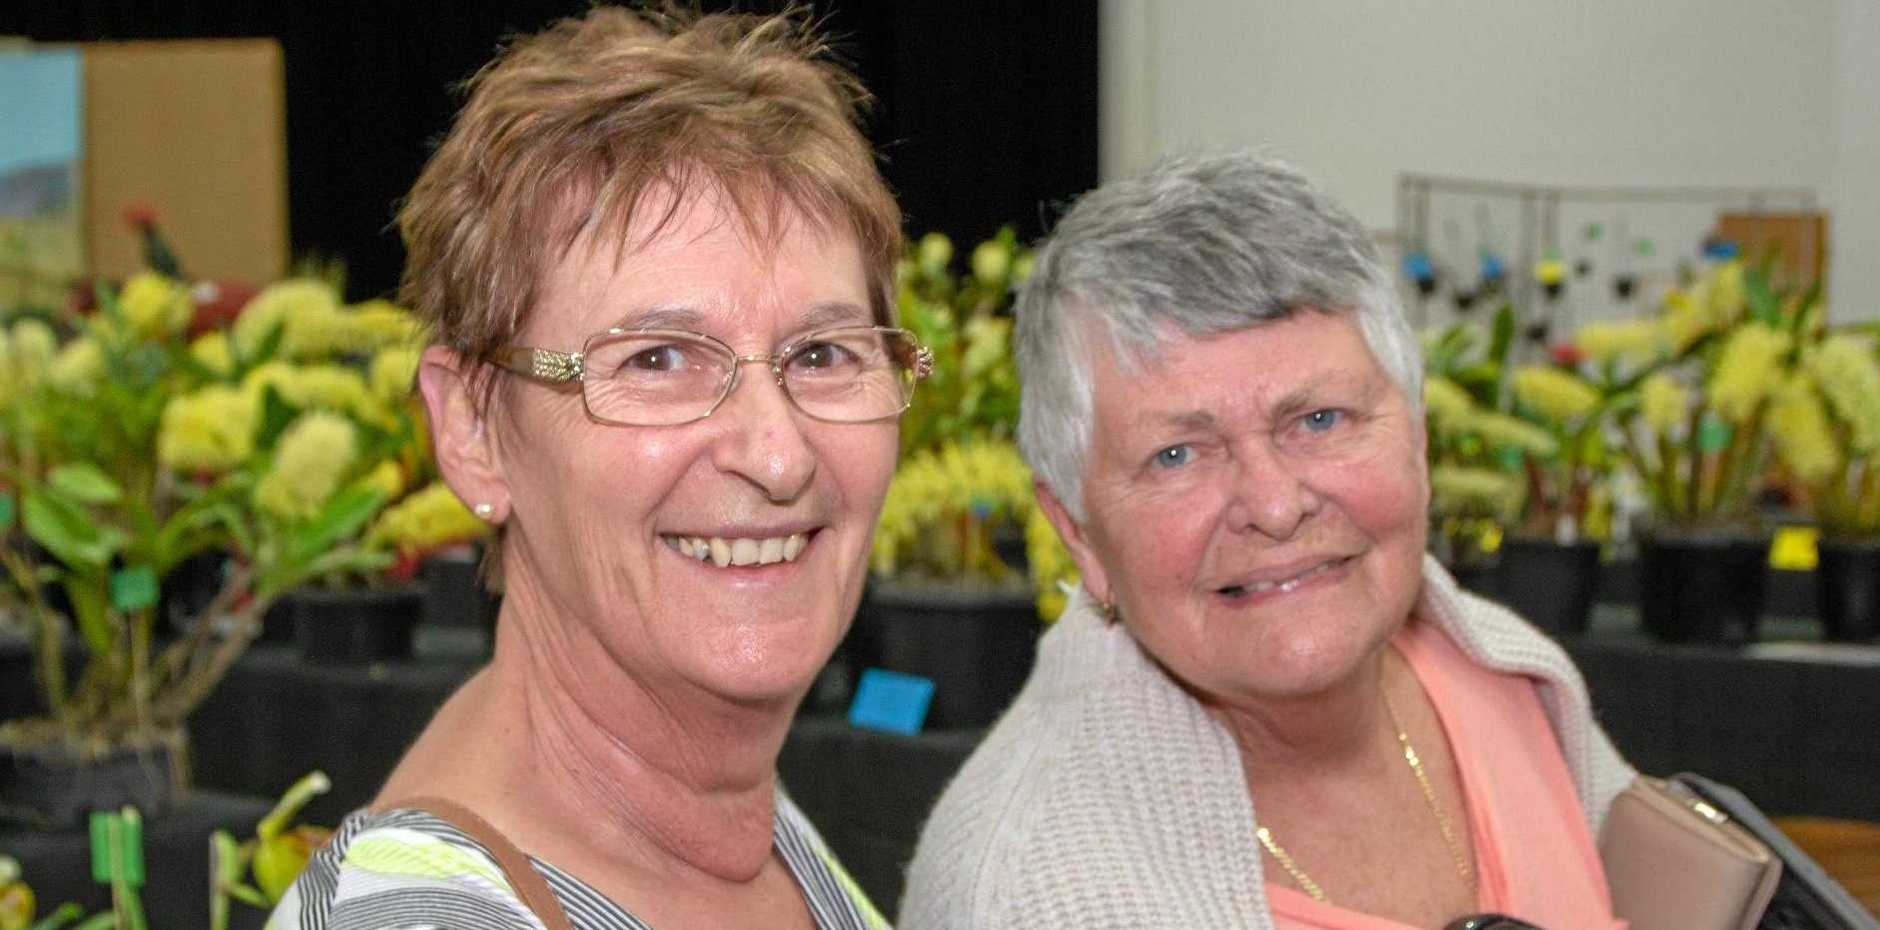 SHOW TIME: Yvonne Crosby and Joan Kickey at the Orchid Show during the 2018 Laidley Spring Festival. It's back this year from Thursday, September 12 to Saturday, September 14, with spectacular window displays and of course the parade on Saturday.